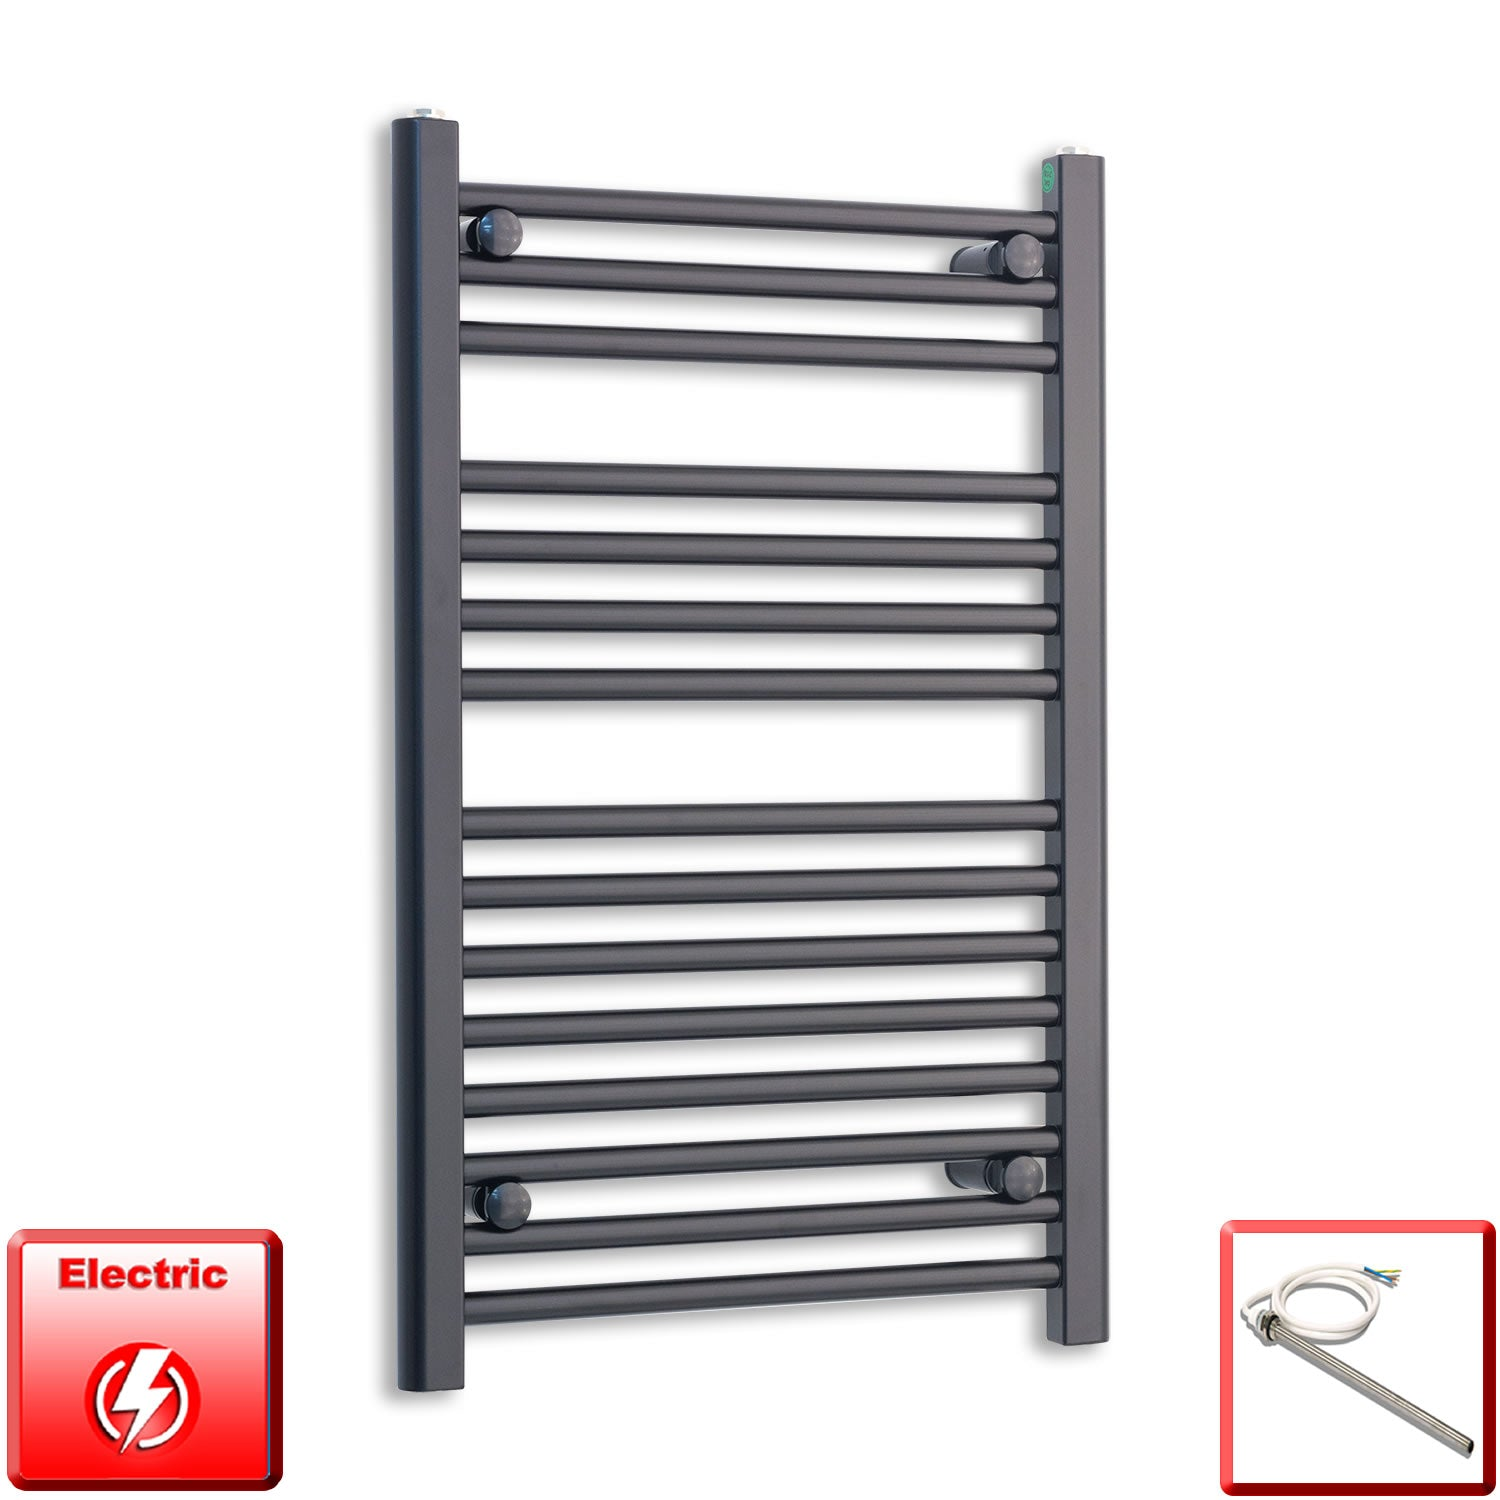 450mm Wide 800mm High Flat Black Pre-Filled Electric Heated Towel Rail Radiator HTR,Single Heat Element